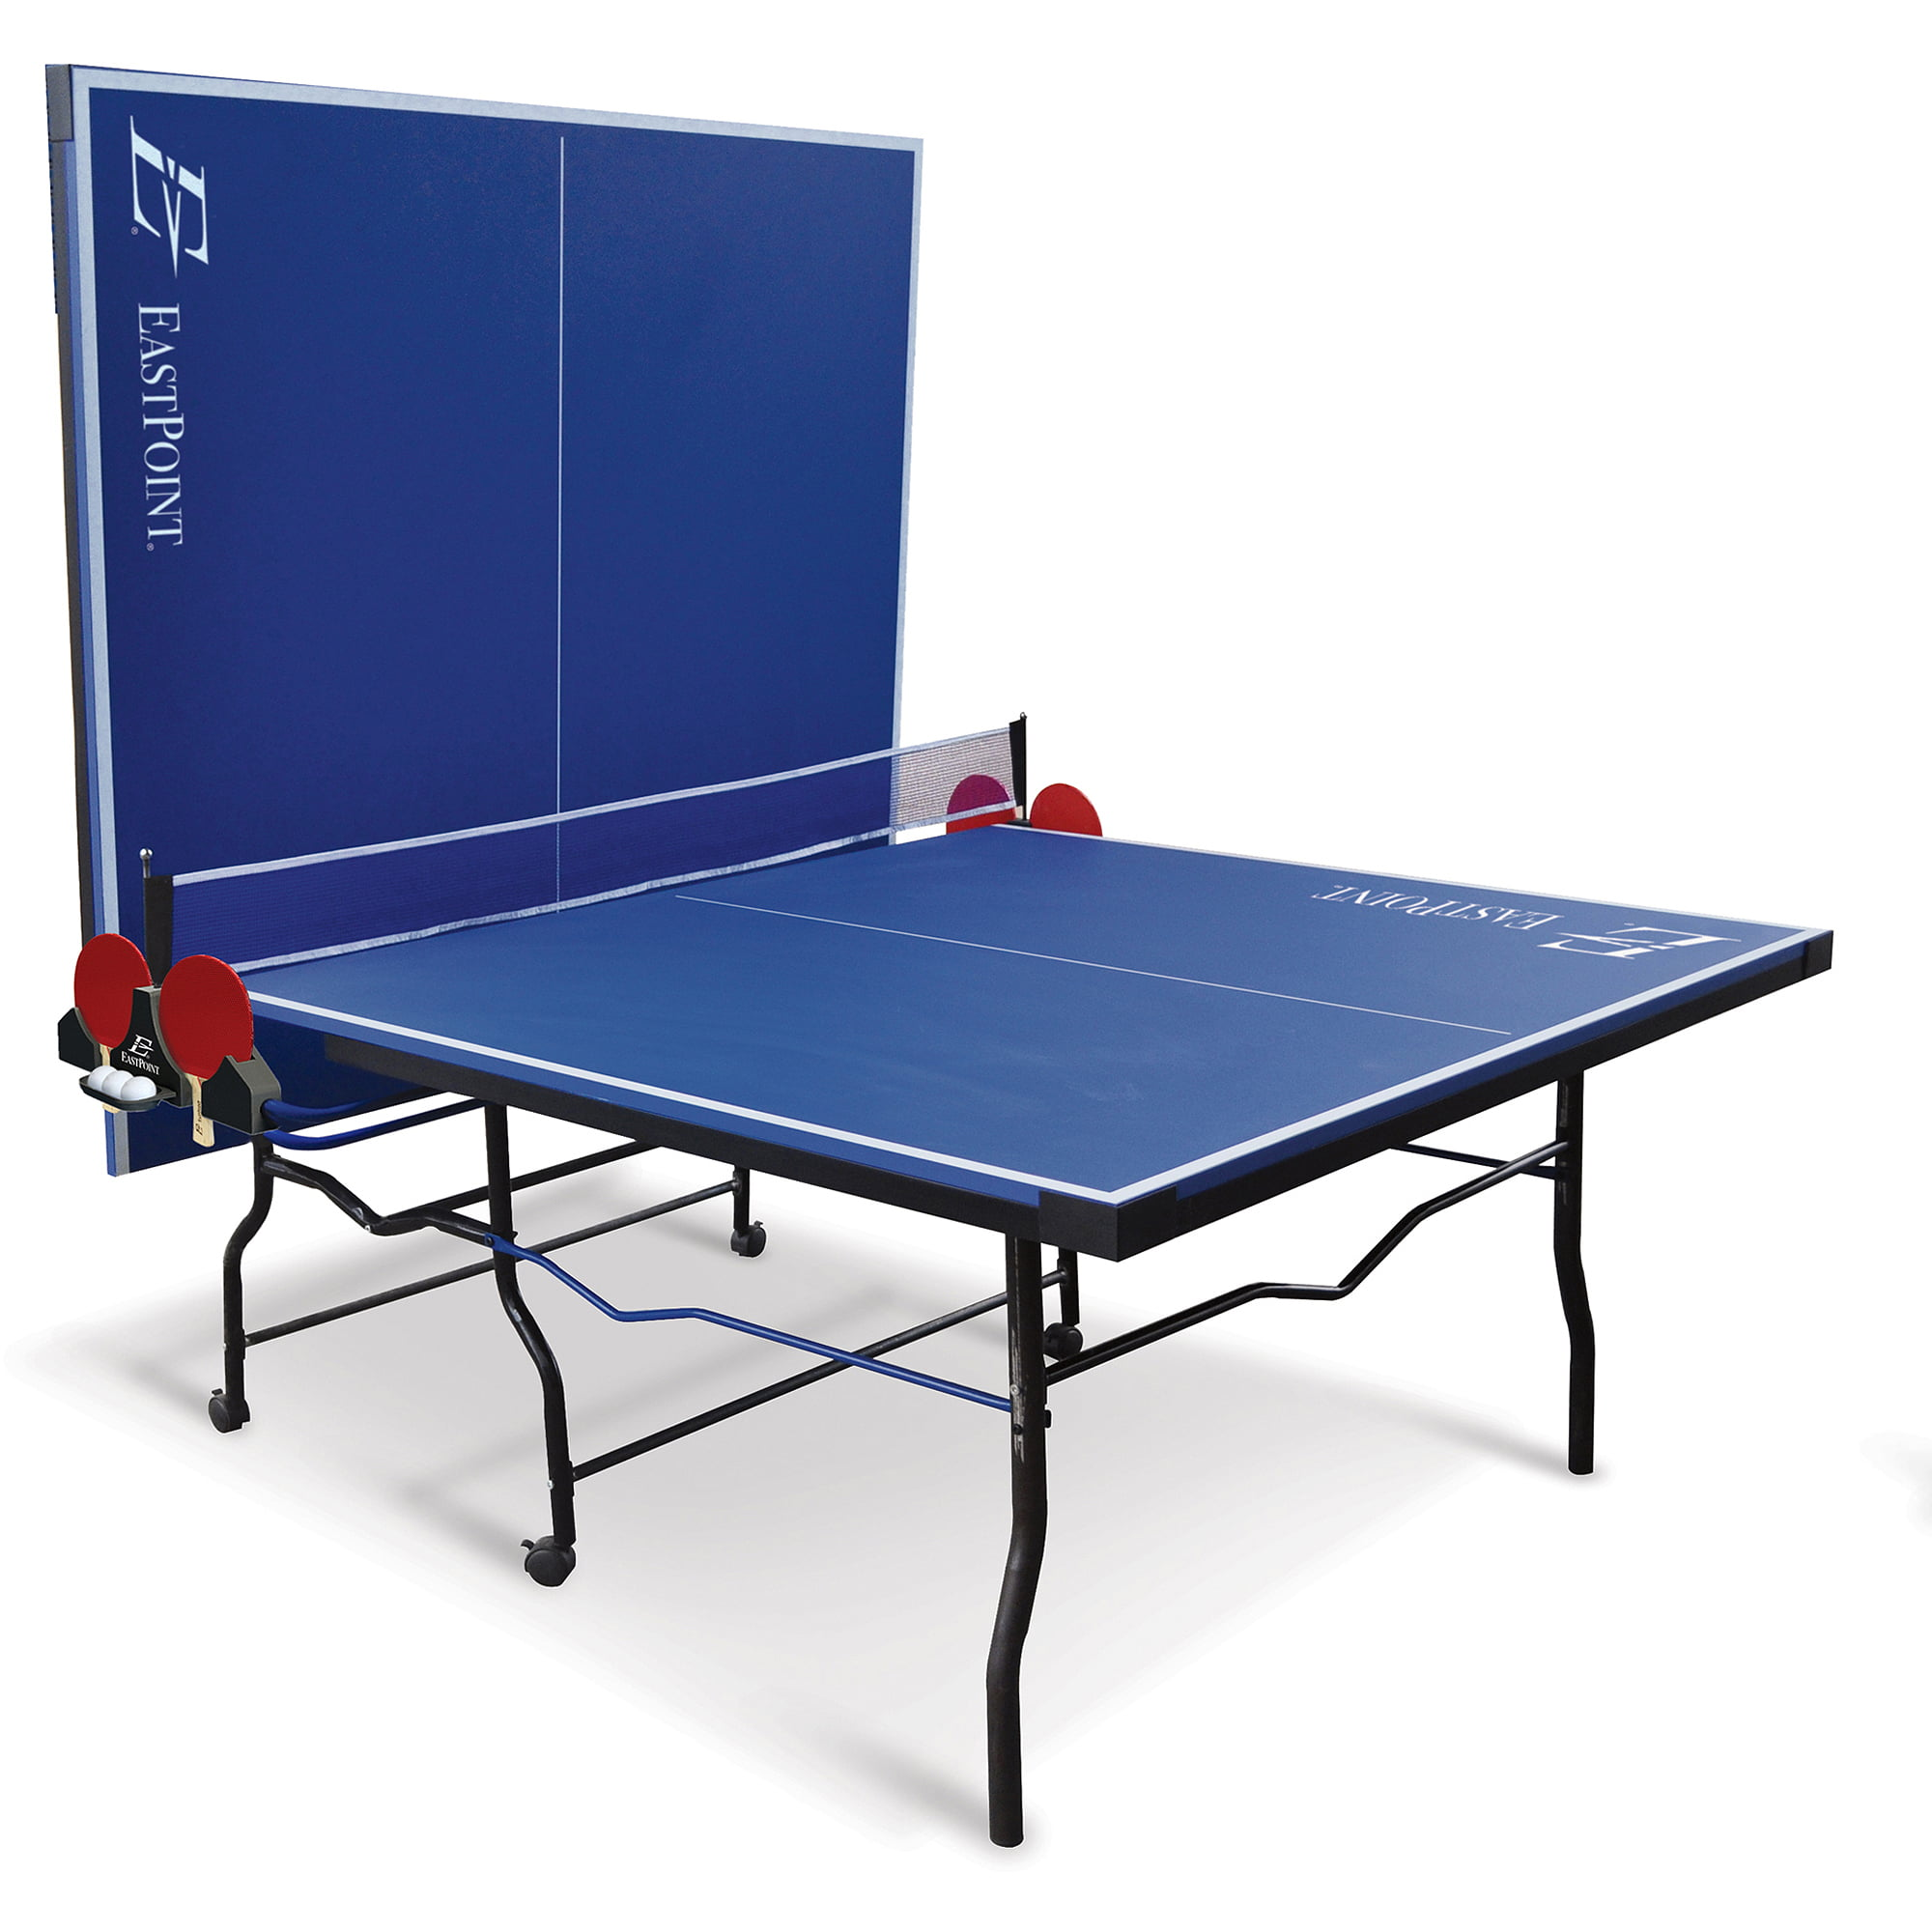 Sportspower 4pc Table Tennis Assembly Instructions